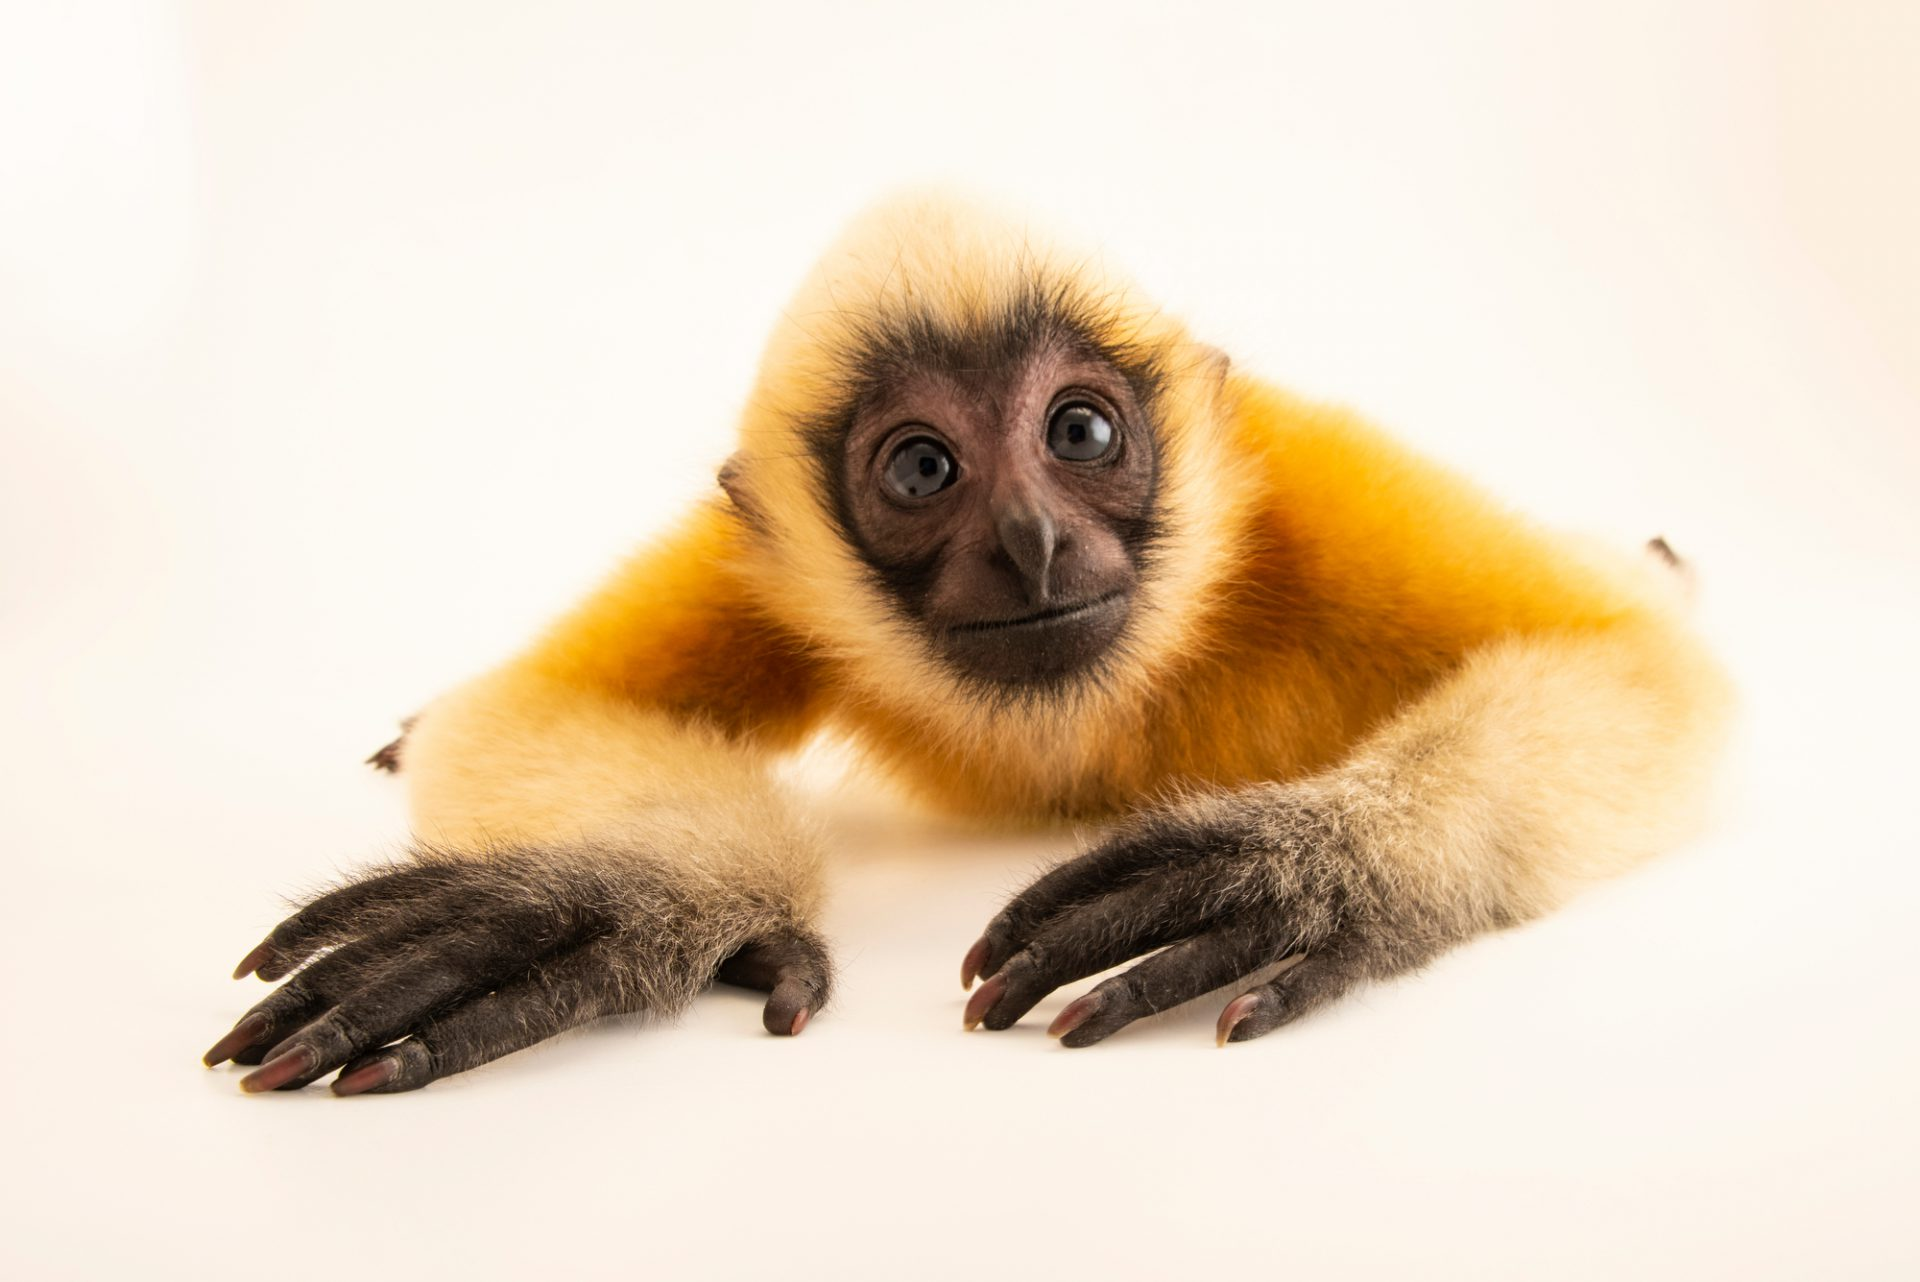 Photo: A critically endangered juvenile northern white cheeked-gibbon (Nomascus leucogenys) at Omaha's Henry Doorly Zoo and Aquarium.